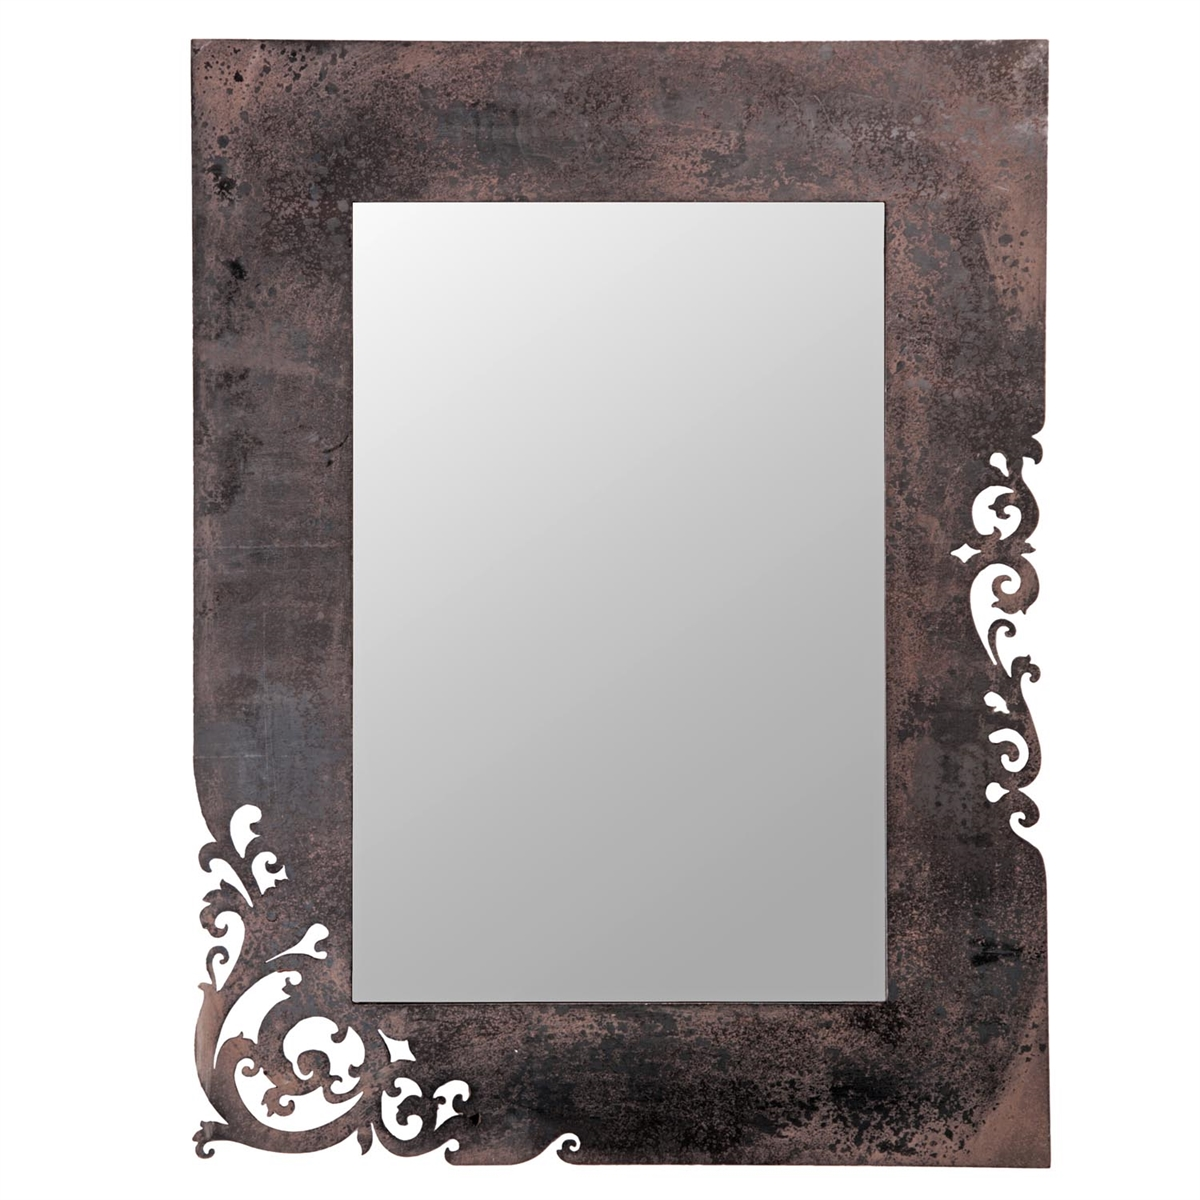 Outstanding Floral Cut Mirror Plum Post How To Cut A Mirror Into An Oval How To Cut A Mirror A Dremel houzz-03 How To Cut A Mirror